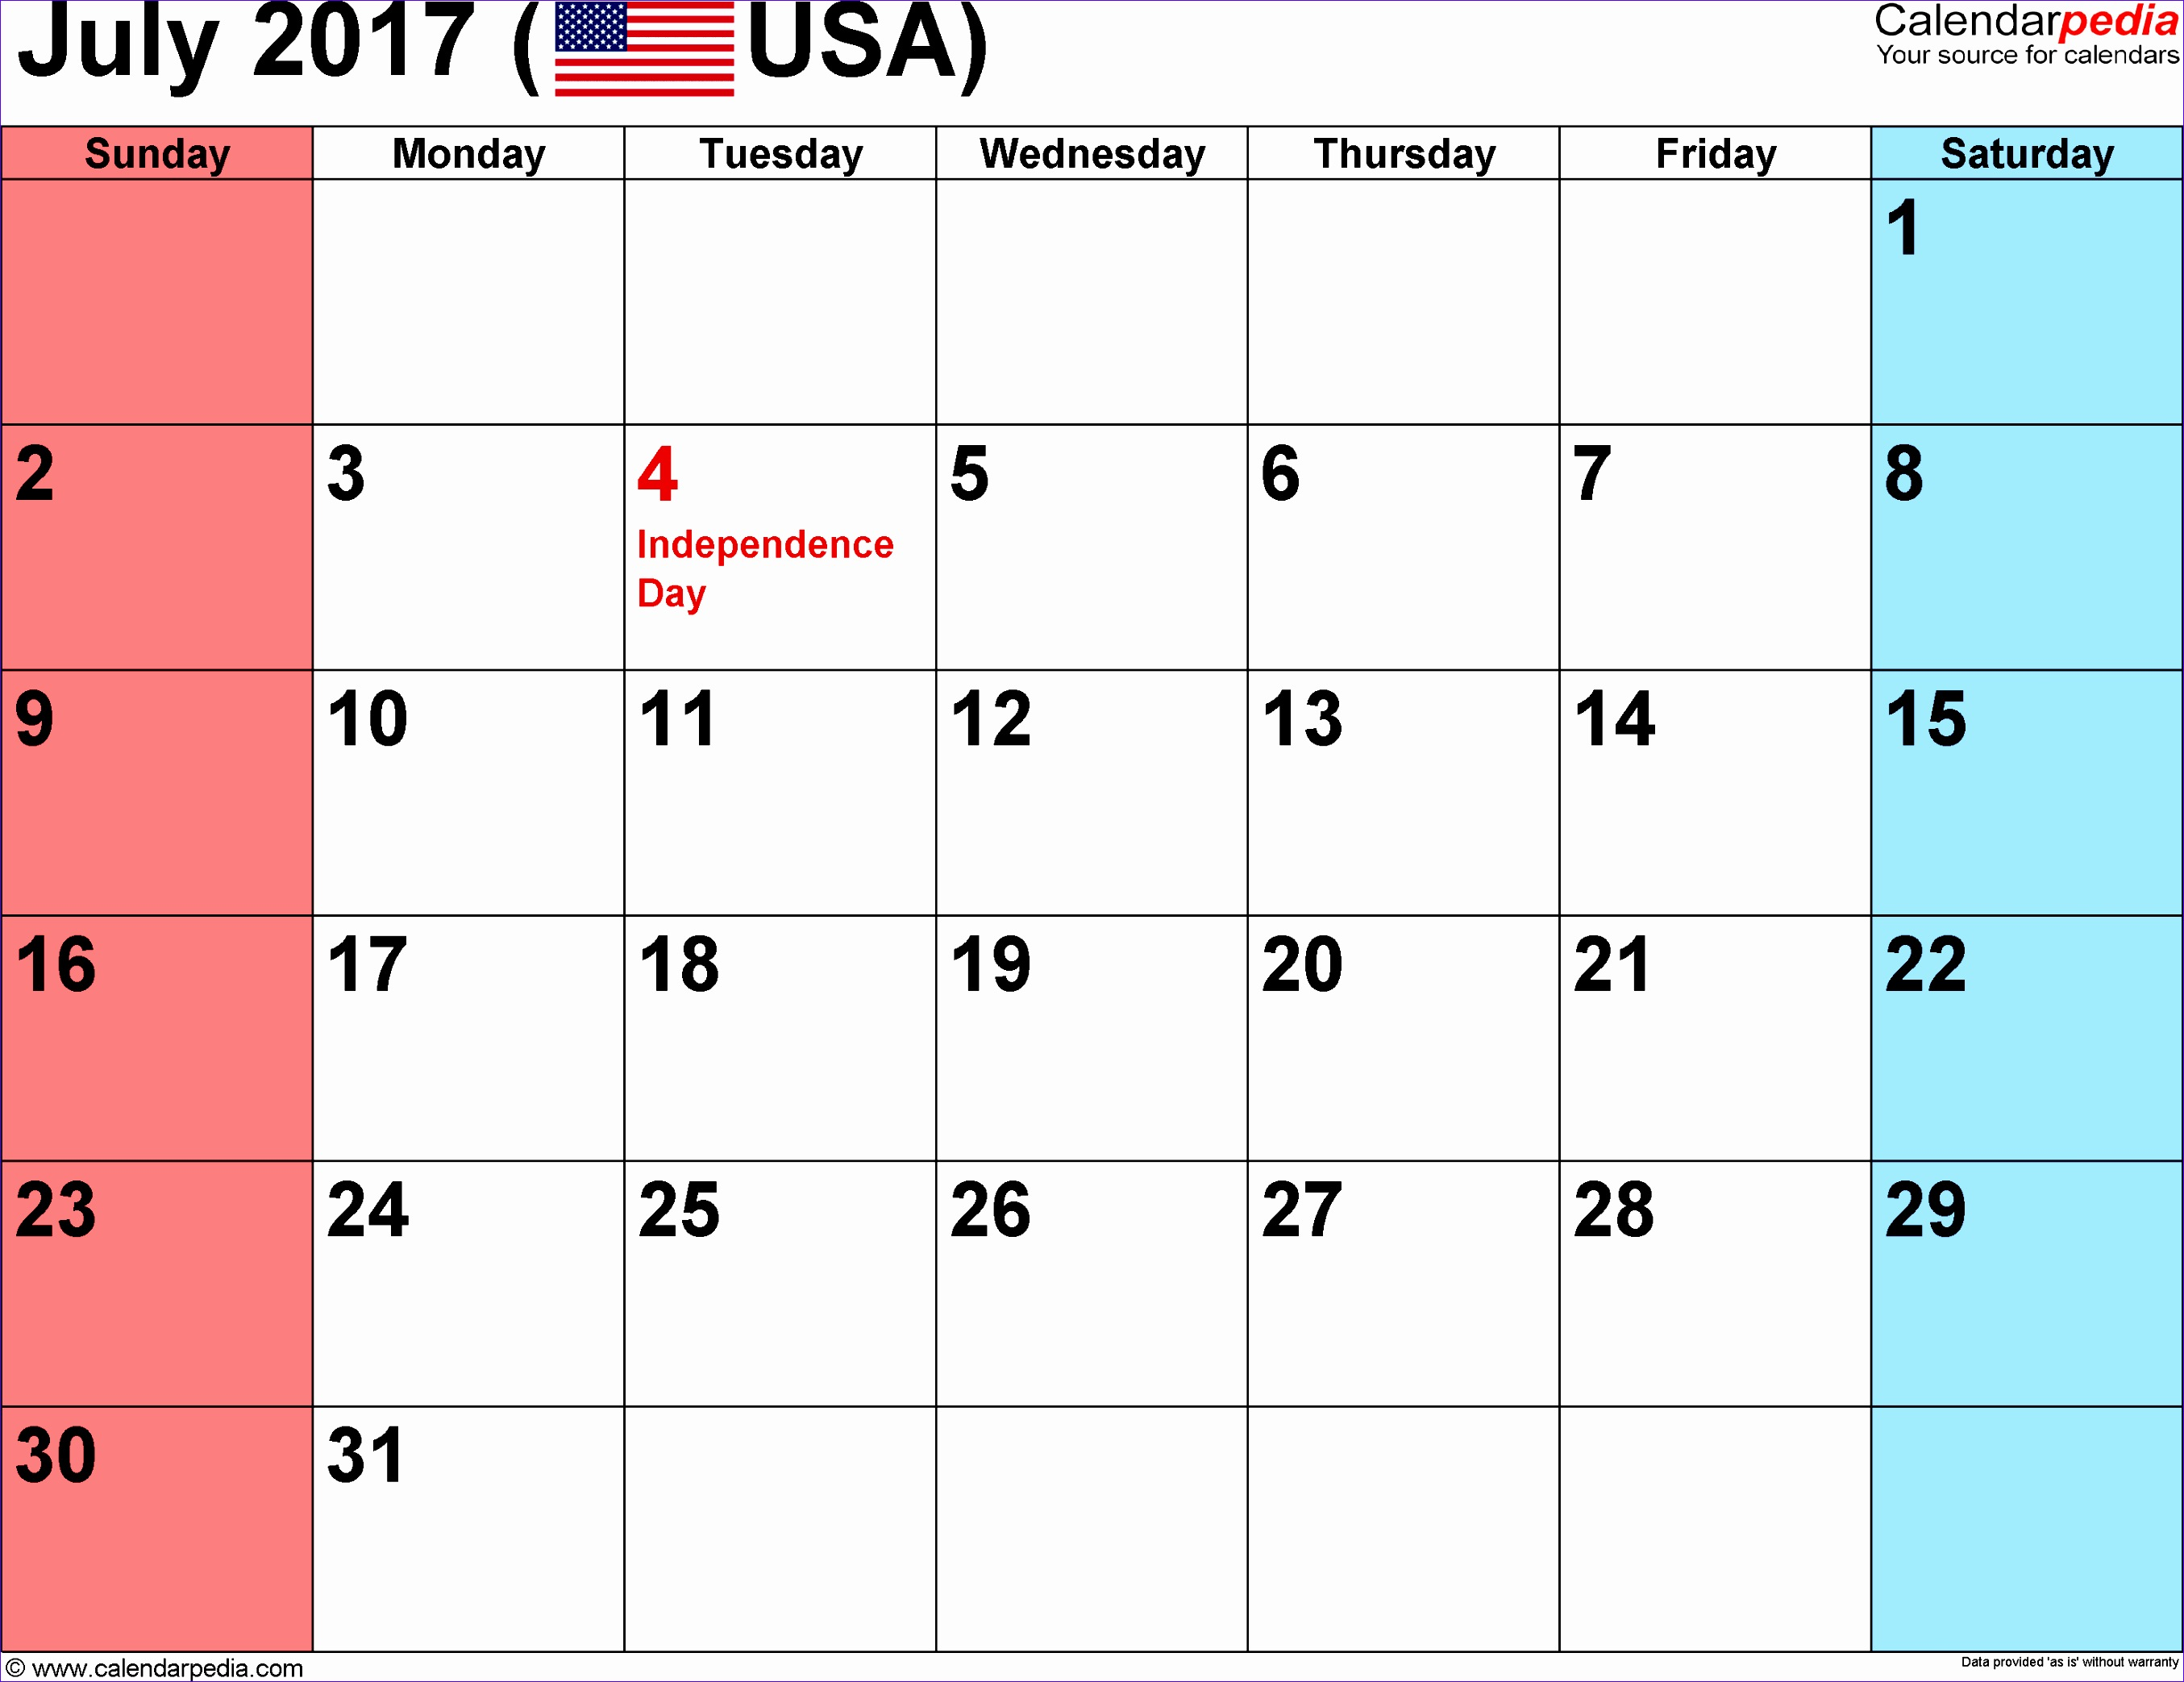 Week Calendar Template Excel Eozsd Awesome July 2017 Calendar Printable with Holidays